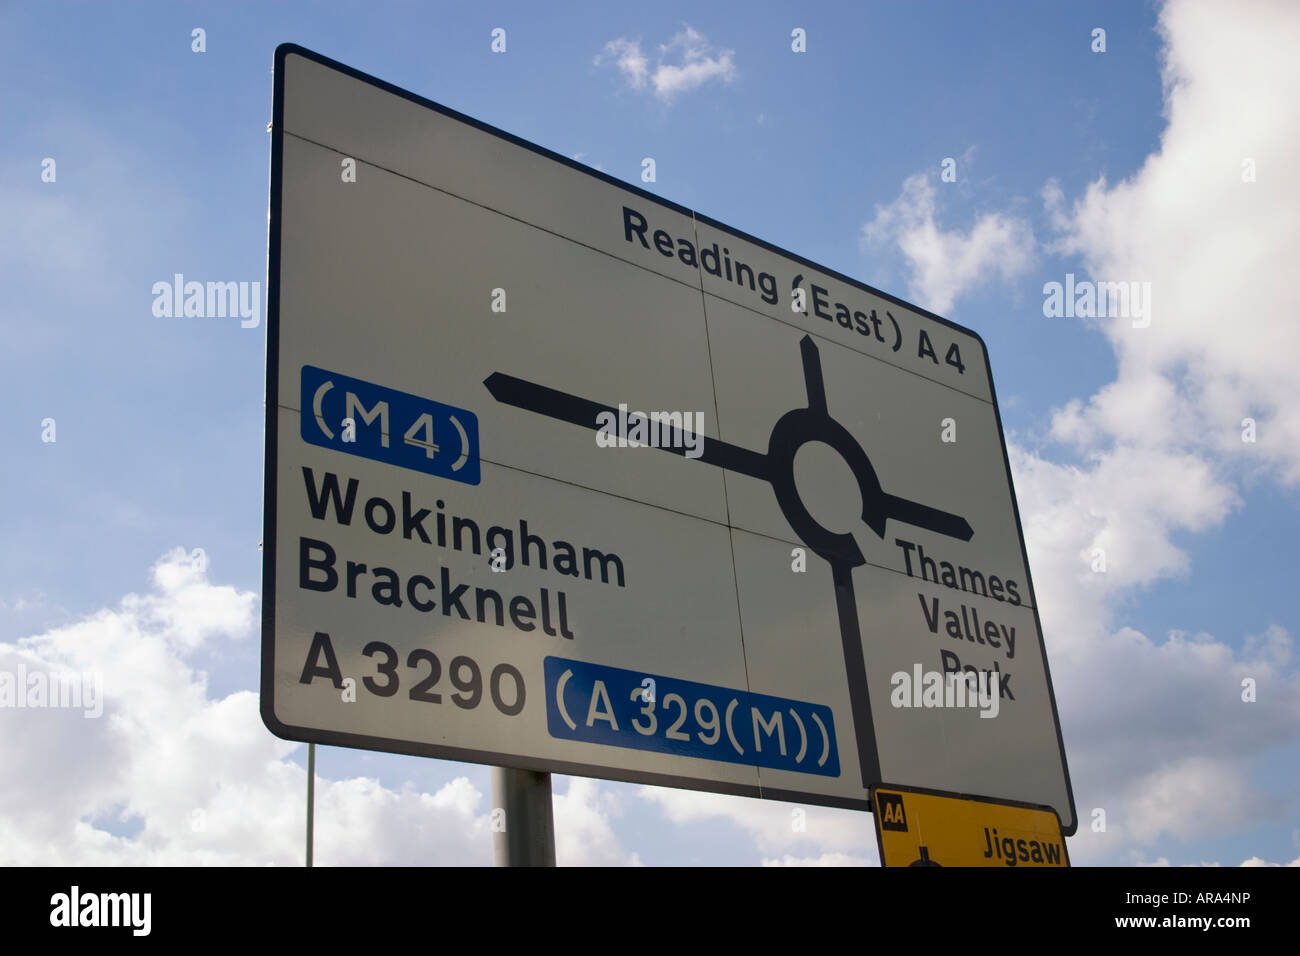 Navigational road sign on the A4 at the junction with the A329M in Reading Berkshire Stock Photo